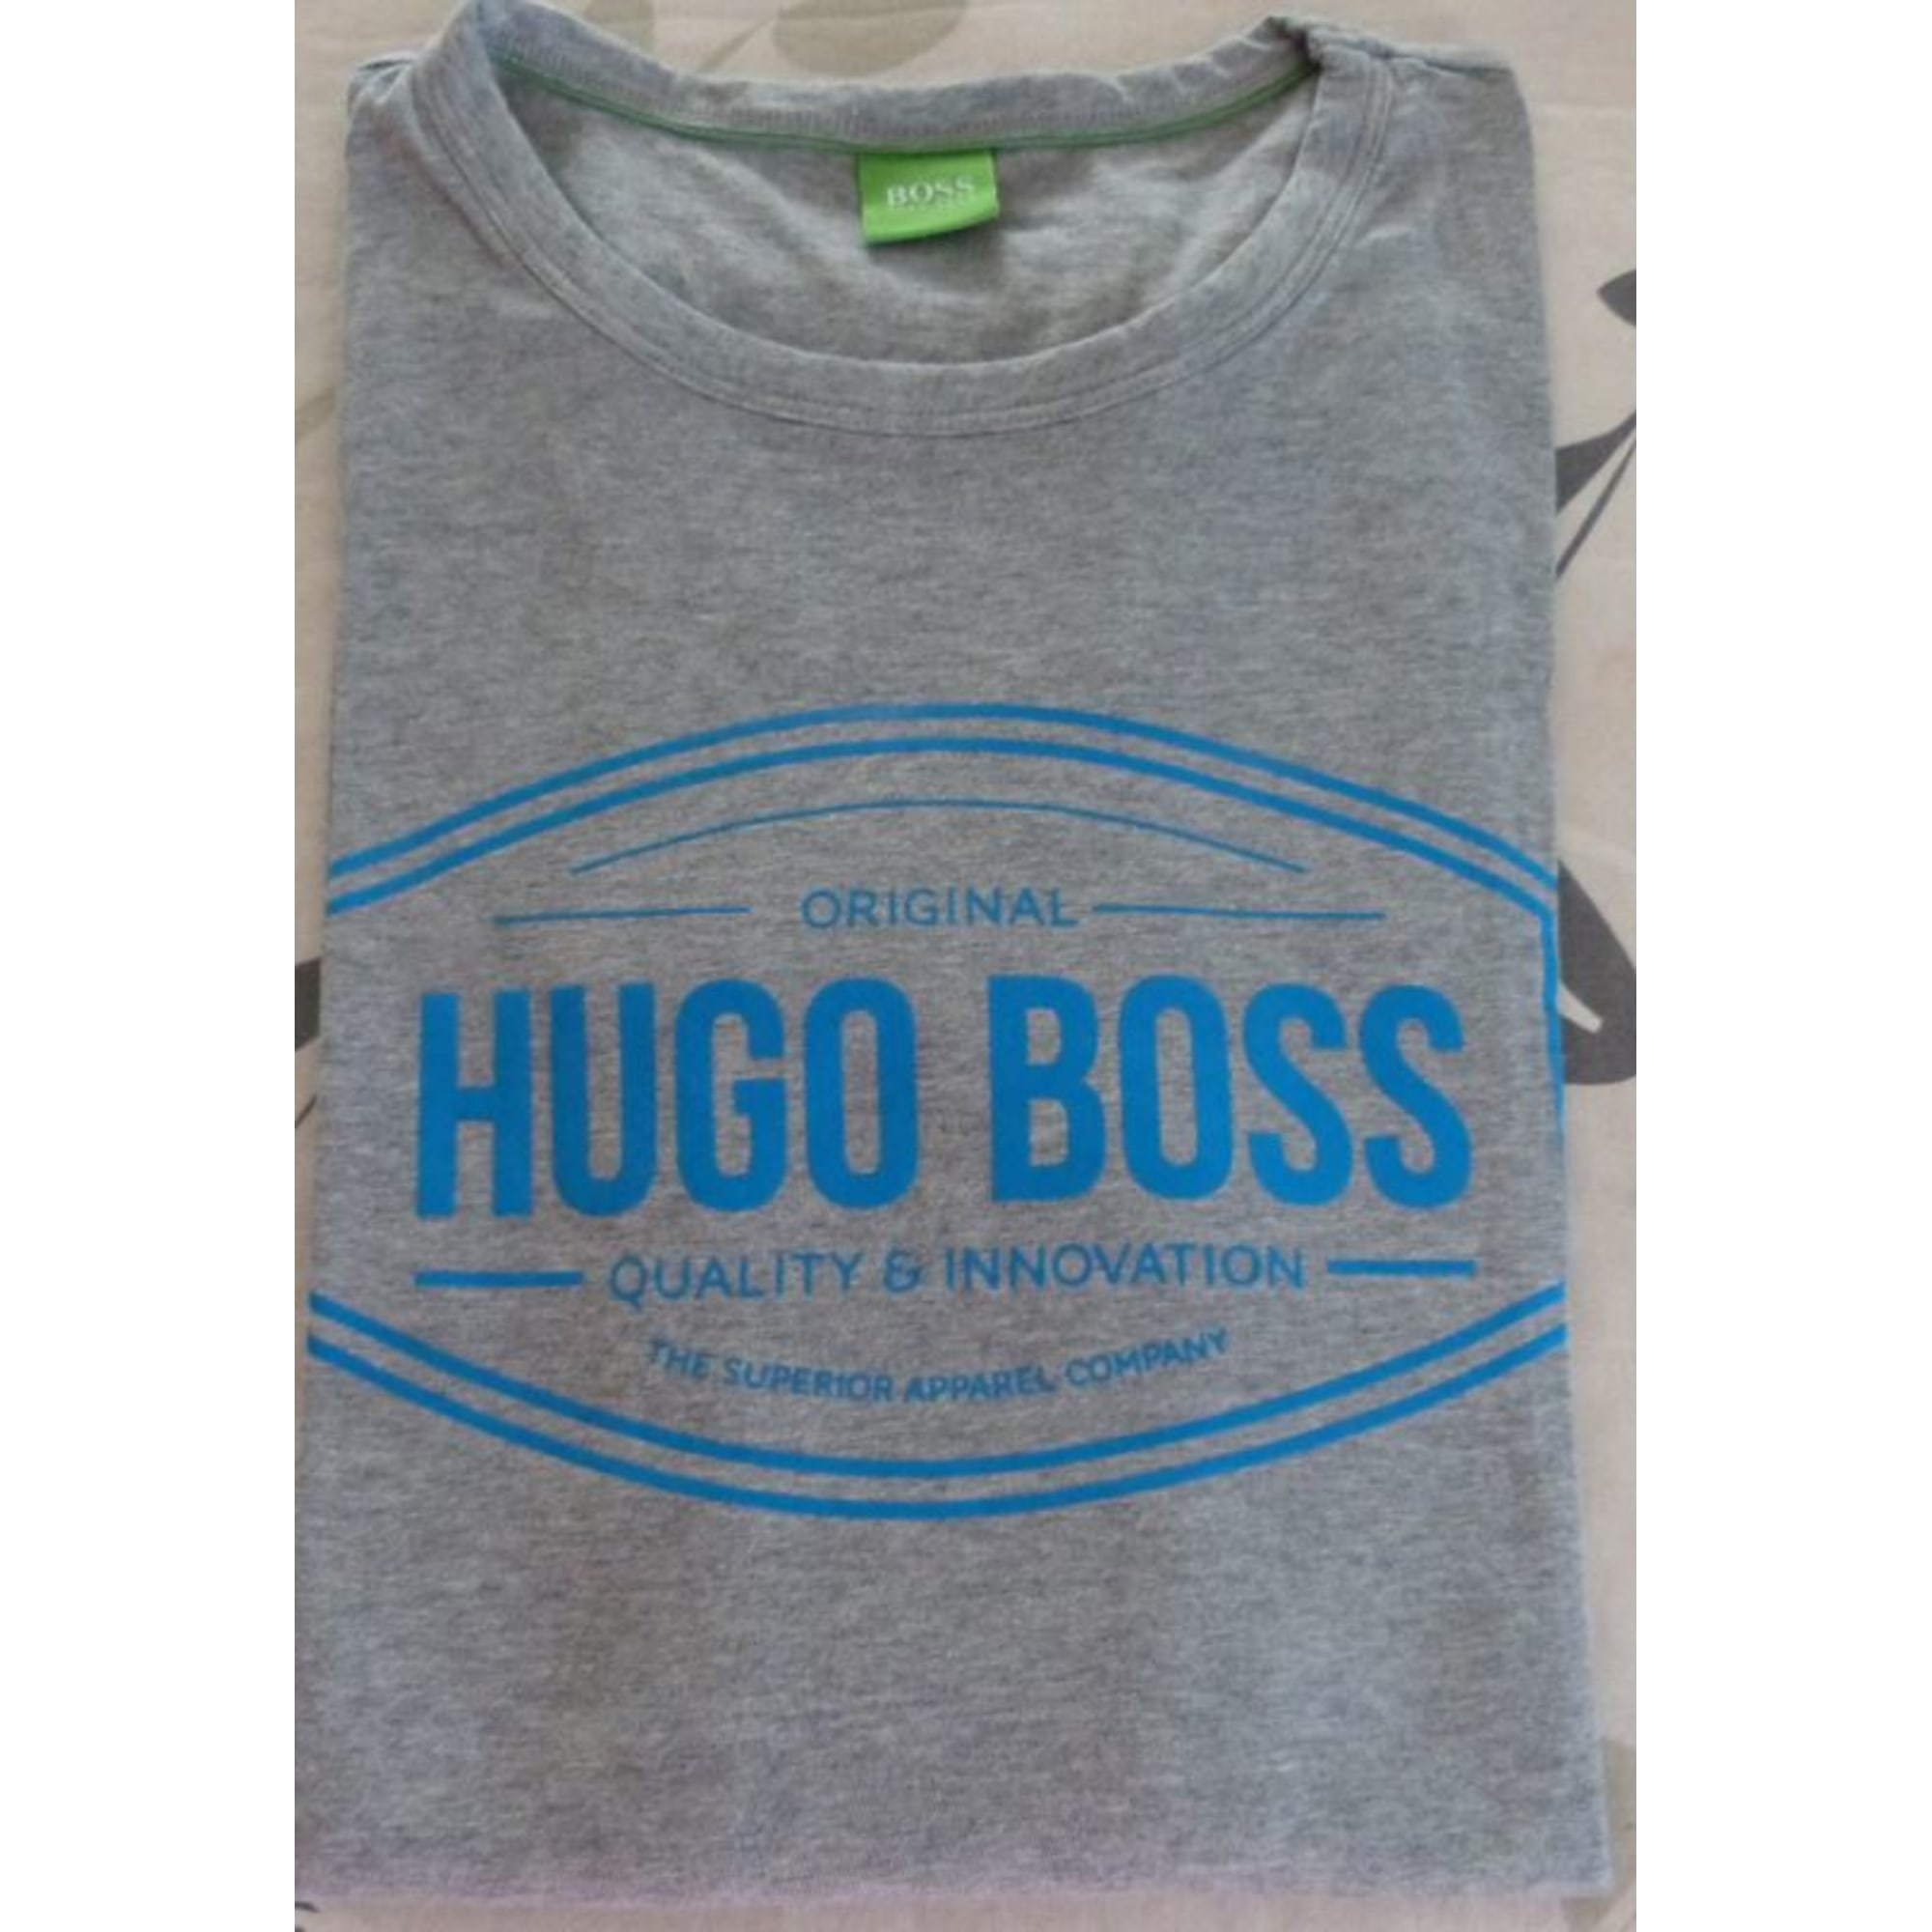 Tee-shirt HUGO BOSS Gris, anthracite